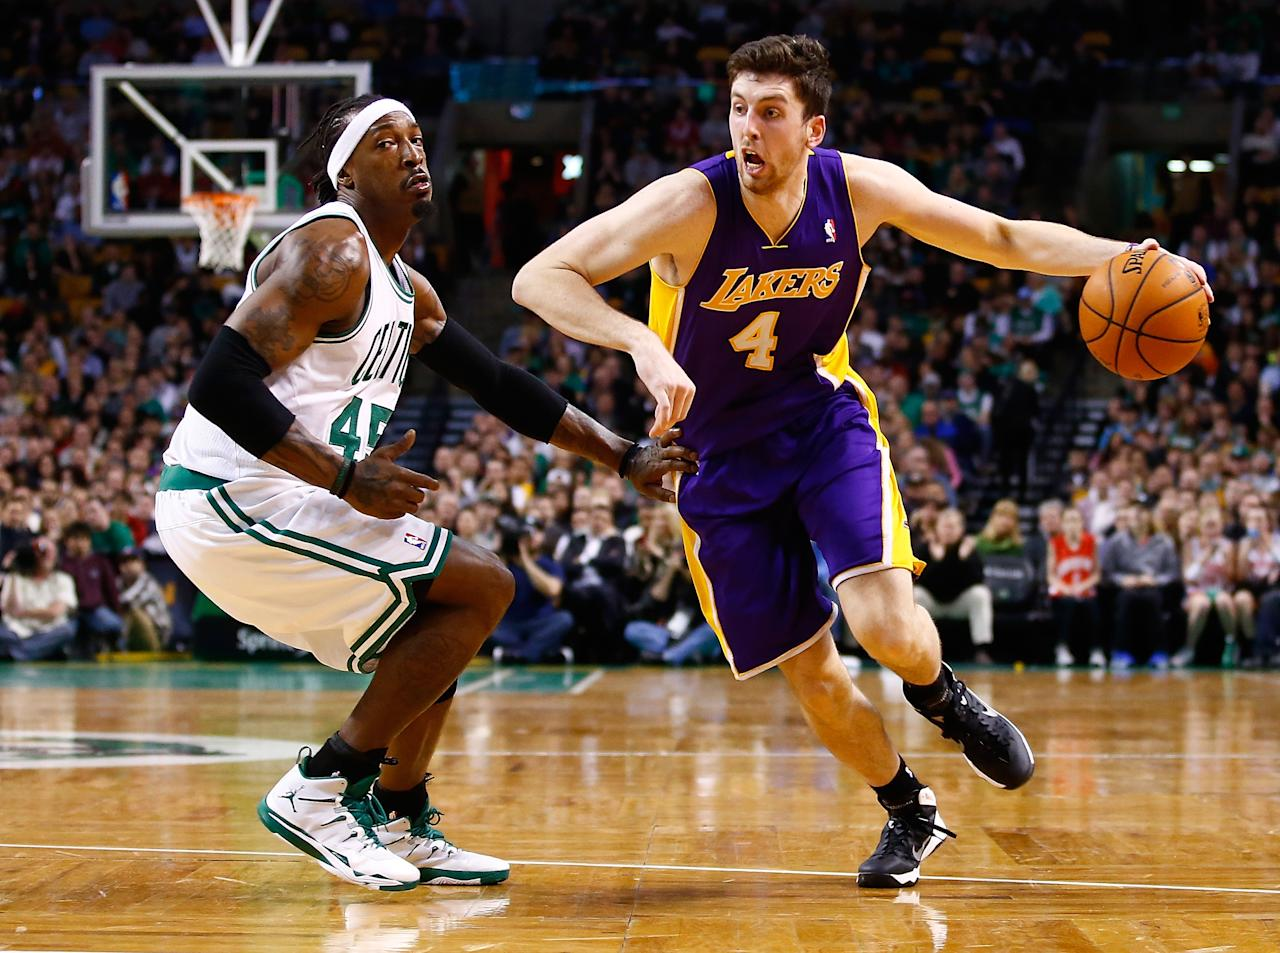 BOSTON, MA - JANUARY 17: Ryan Kelly #4 of the Los Angeles Lakers drives to the basket past Gerald Wallace #45 of the Boston Celtics in the second half during the game at TD Garden on January 17, 2014 in Boston, Massachusetts. NOTE TO USER: User expressly acknowledges and agrees that, by downloading and or using this photograph, User is consenting to the terms and conditions of the Getty Images License Agreement. (Photo by Jared Wickerham/Getty Images)